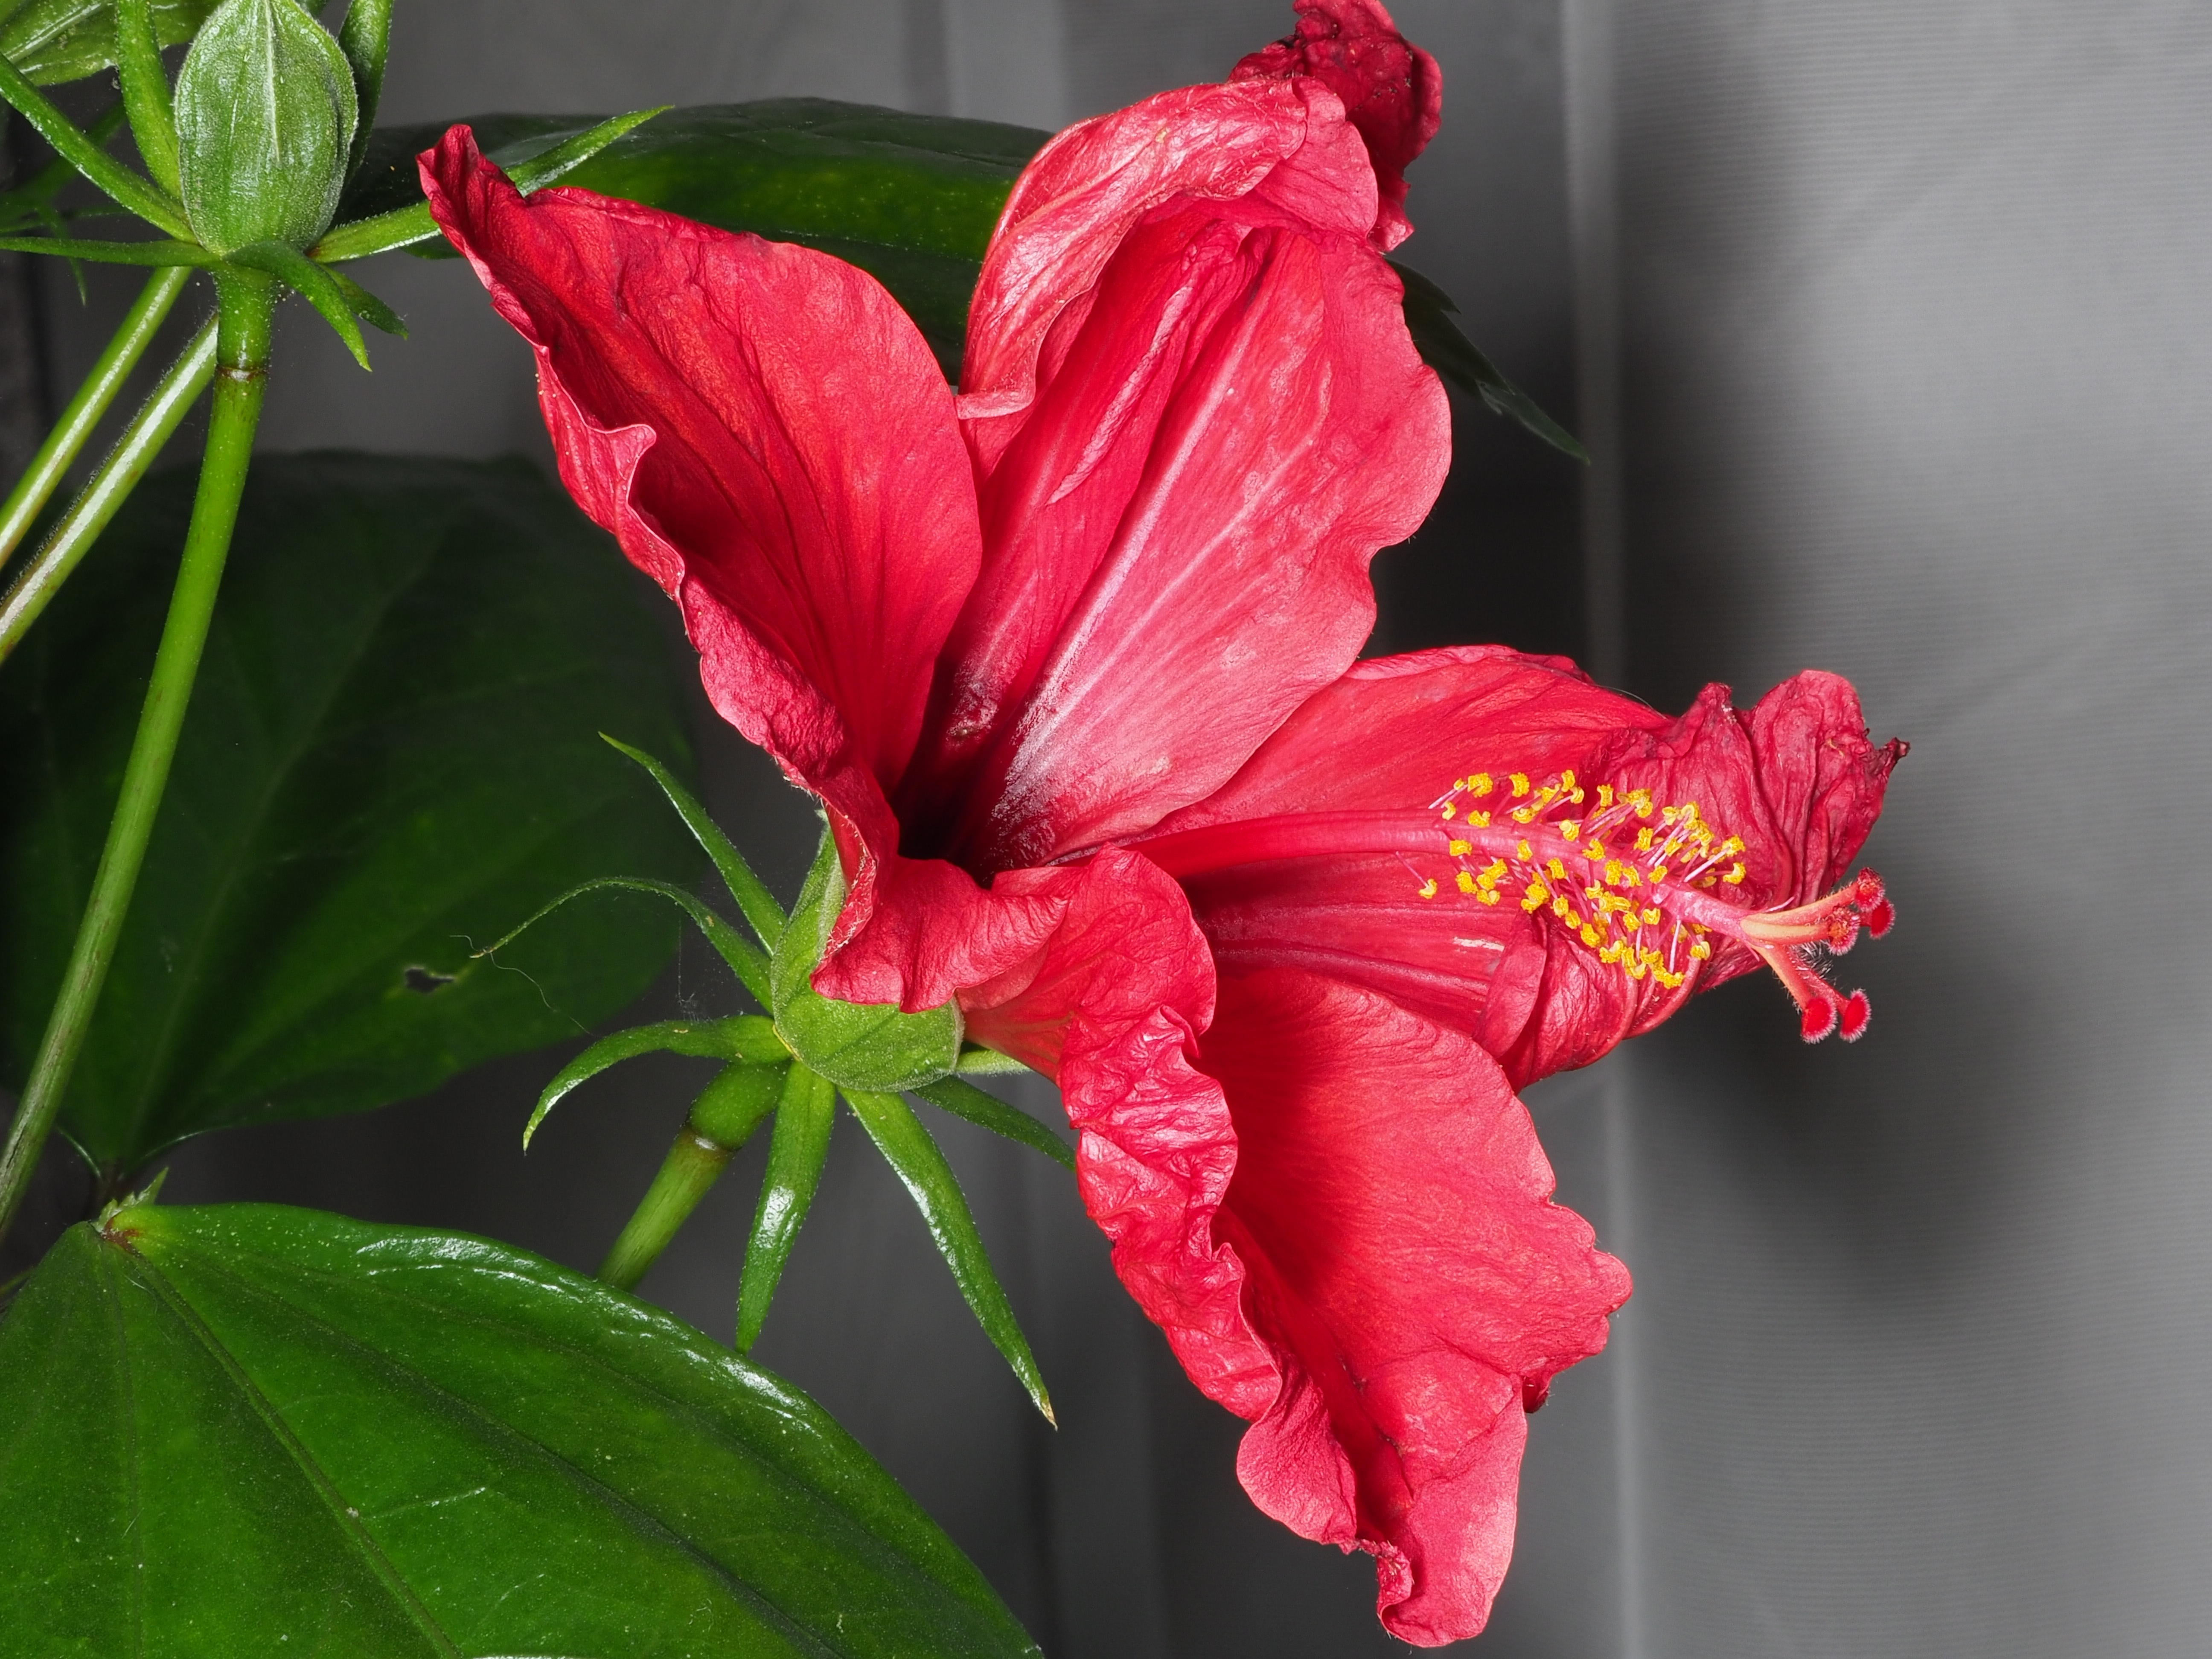 This should be Hibiscus-4.jpeg.  Is it missing?